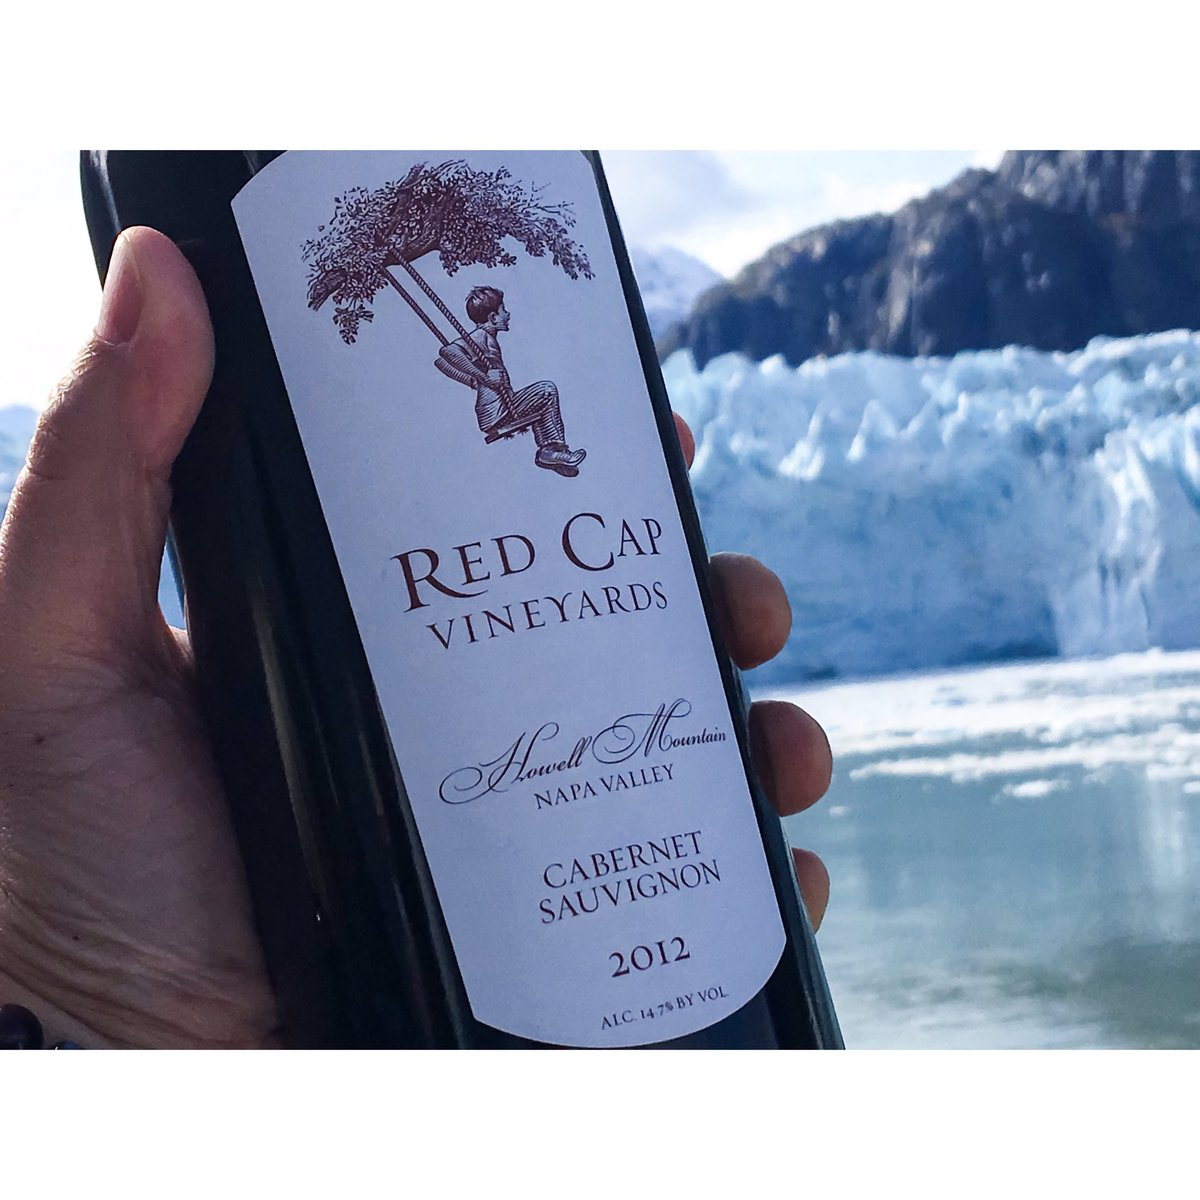 Where was the most interesting place you ever had a btl of wine?? Ours was right here in #Alaska. @redcapvineyards #rkmwinepics 09-27-16 https://t.co/Zae97JILEd